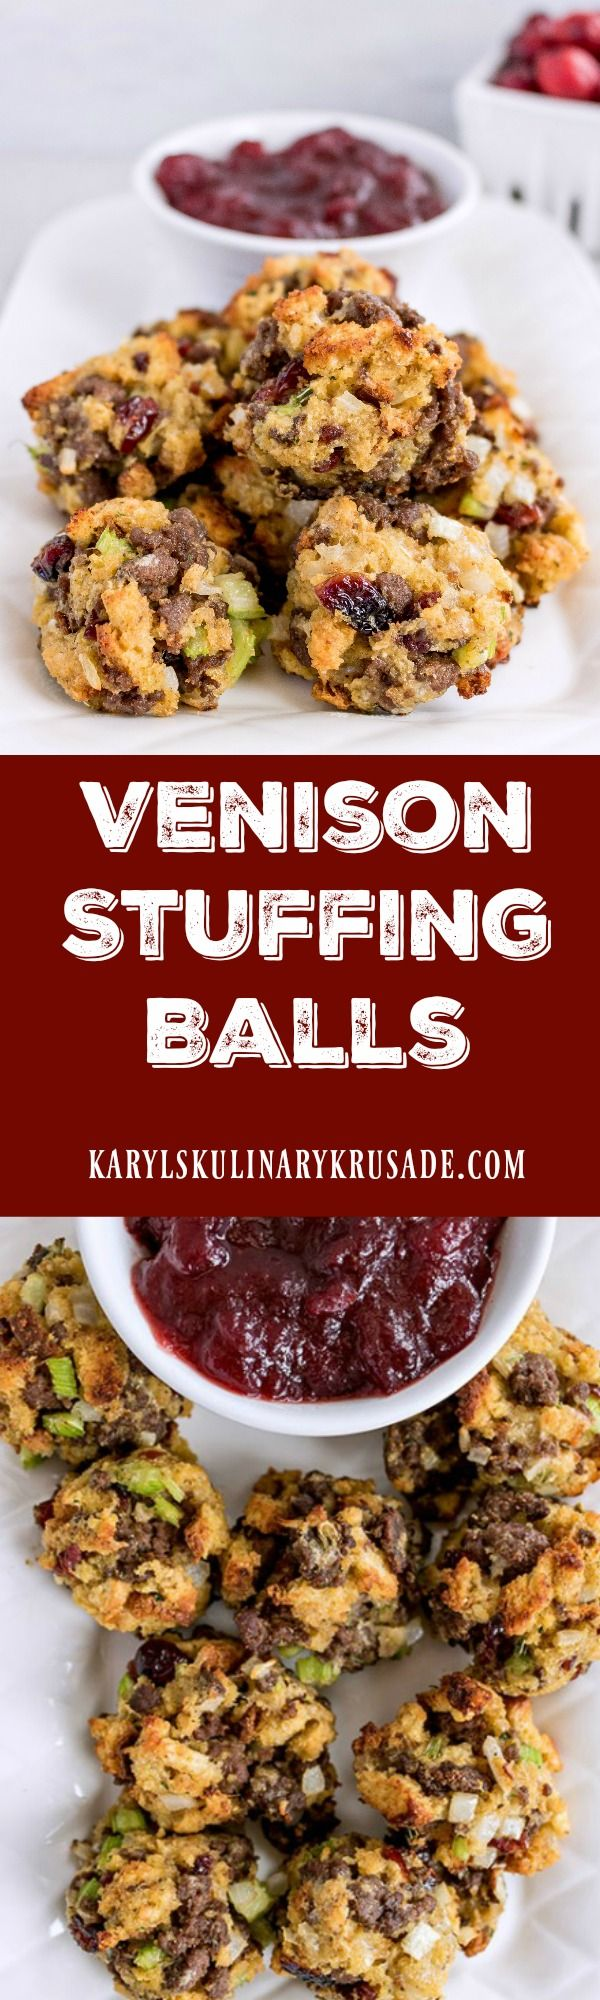 Venison Stuffing Balls are a delicious appetizer to share with friends and family during the holidays. You'll want to make extra, because they will go fast! #holidays #thankful #fingerfood #appetizer #partyfood #venison #gamemeat #deermeat #stuffing #cranberries #karylskulinarykrusade